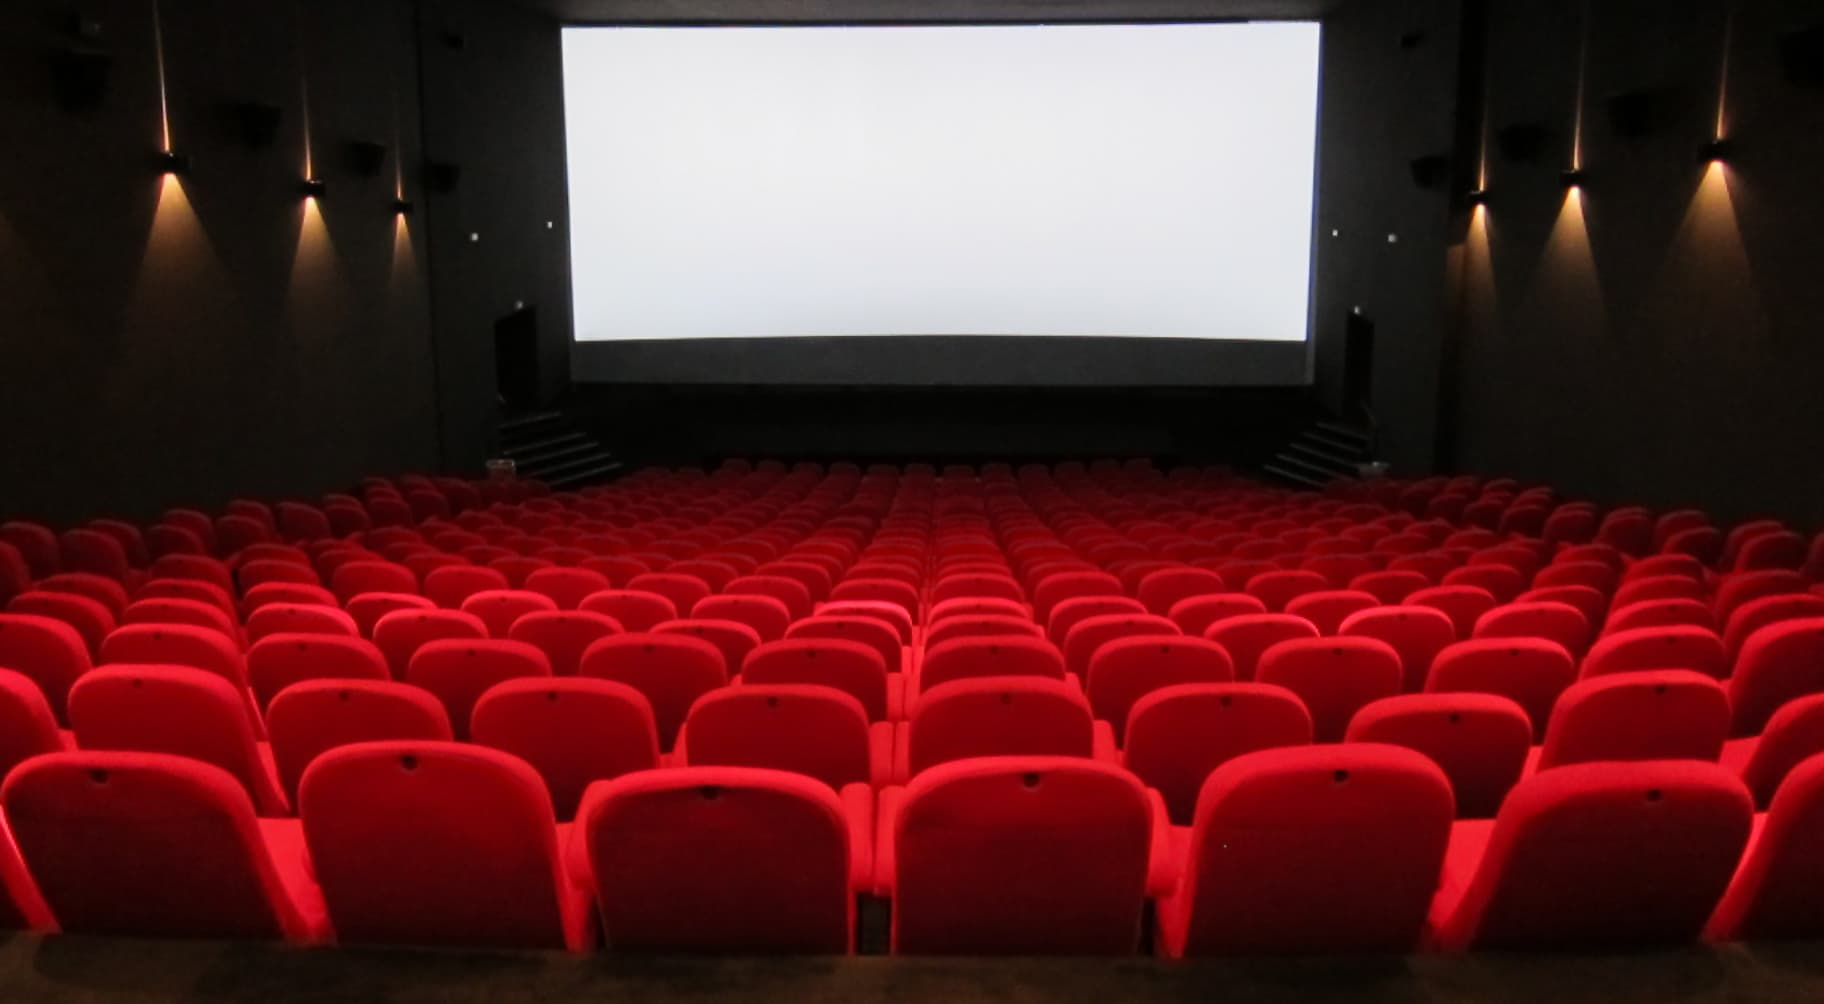 Murree to get its first cinema in 20 years